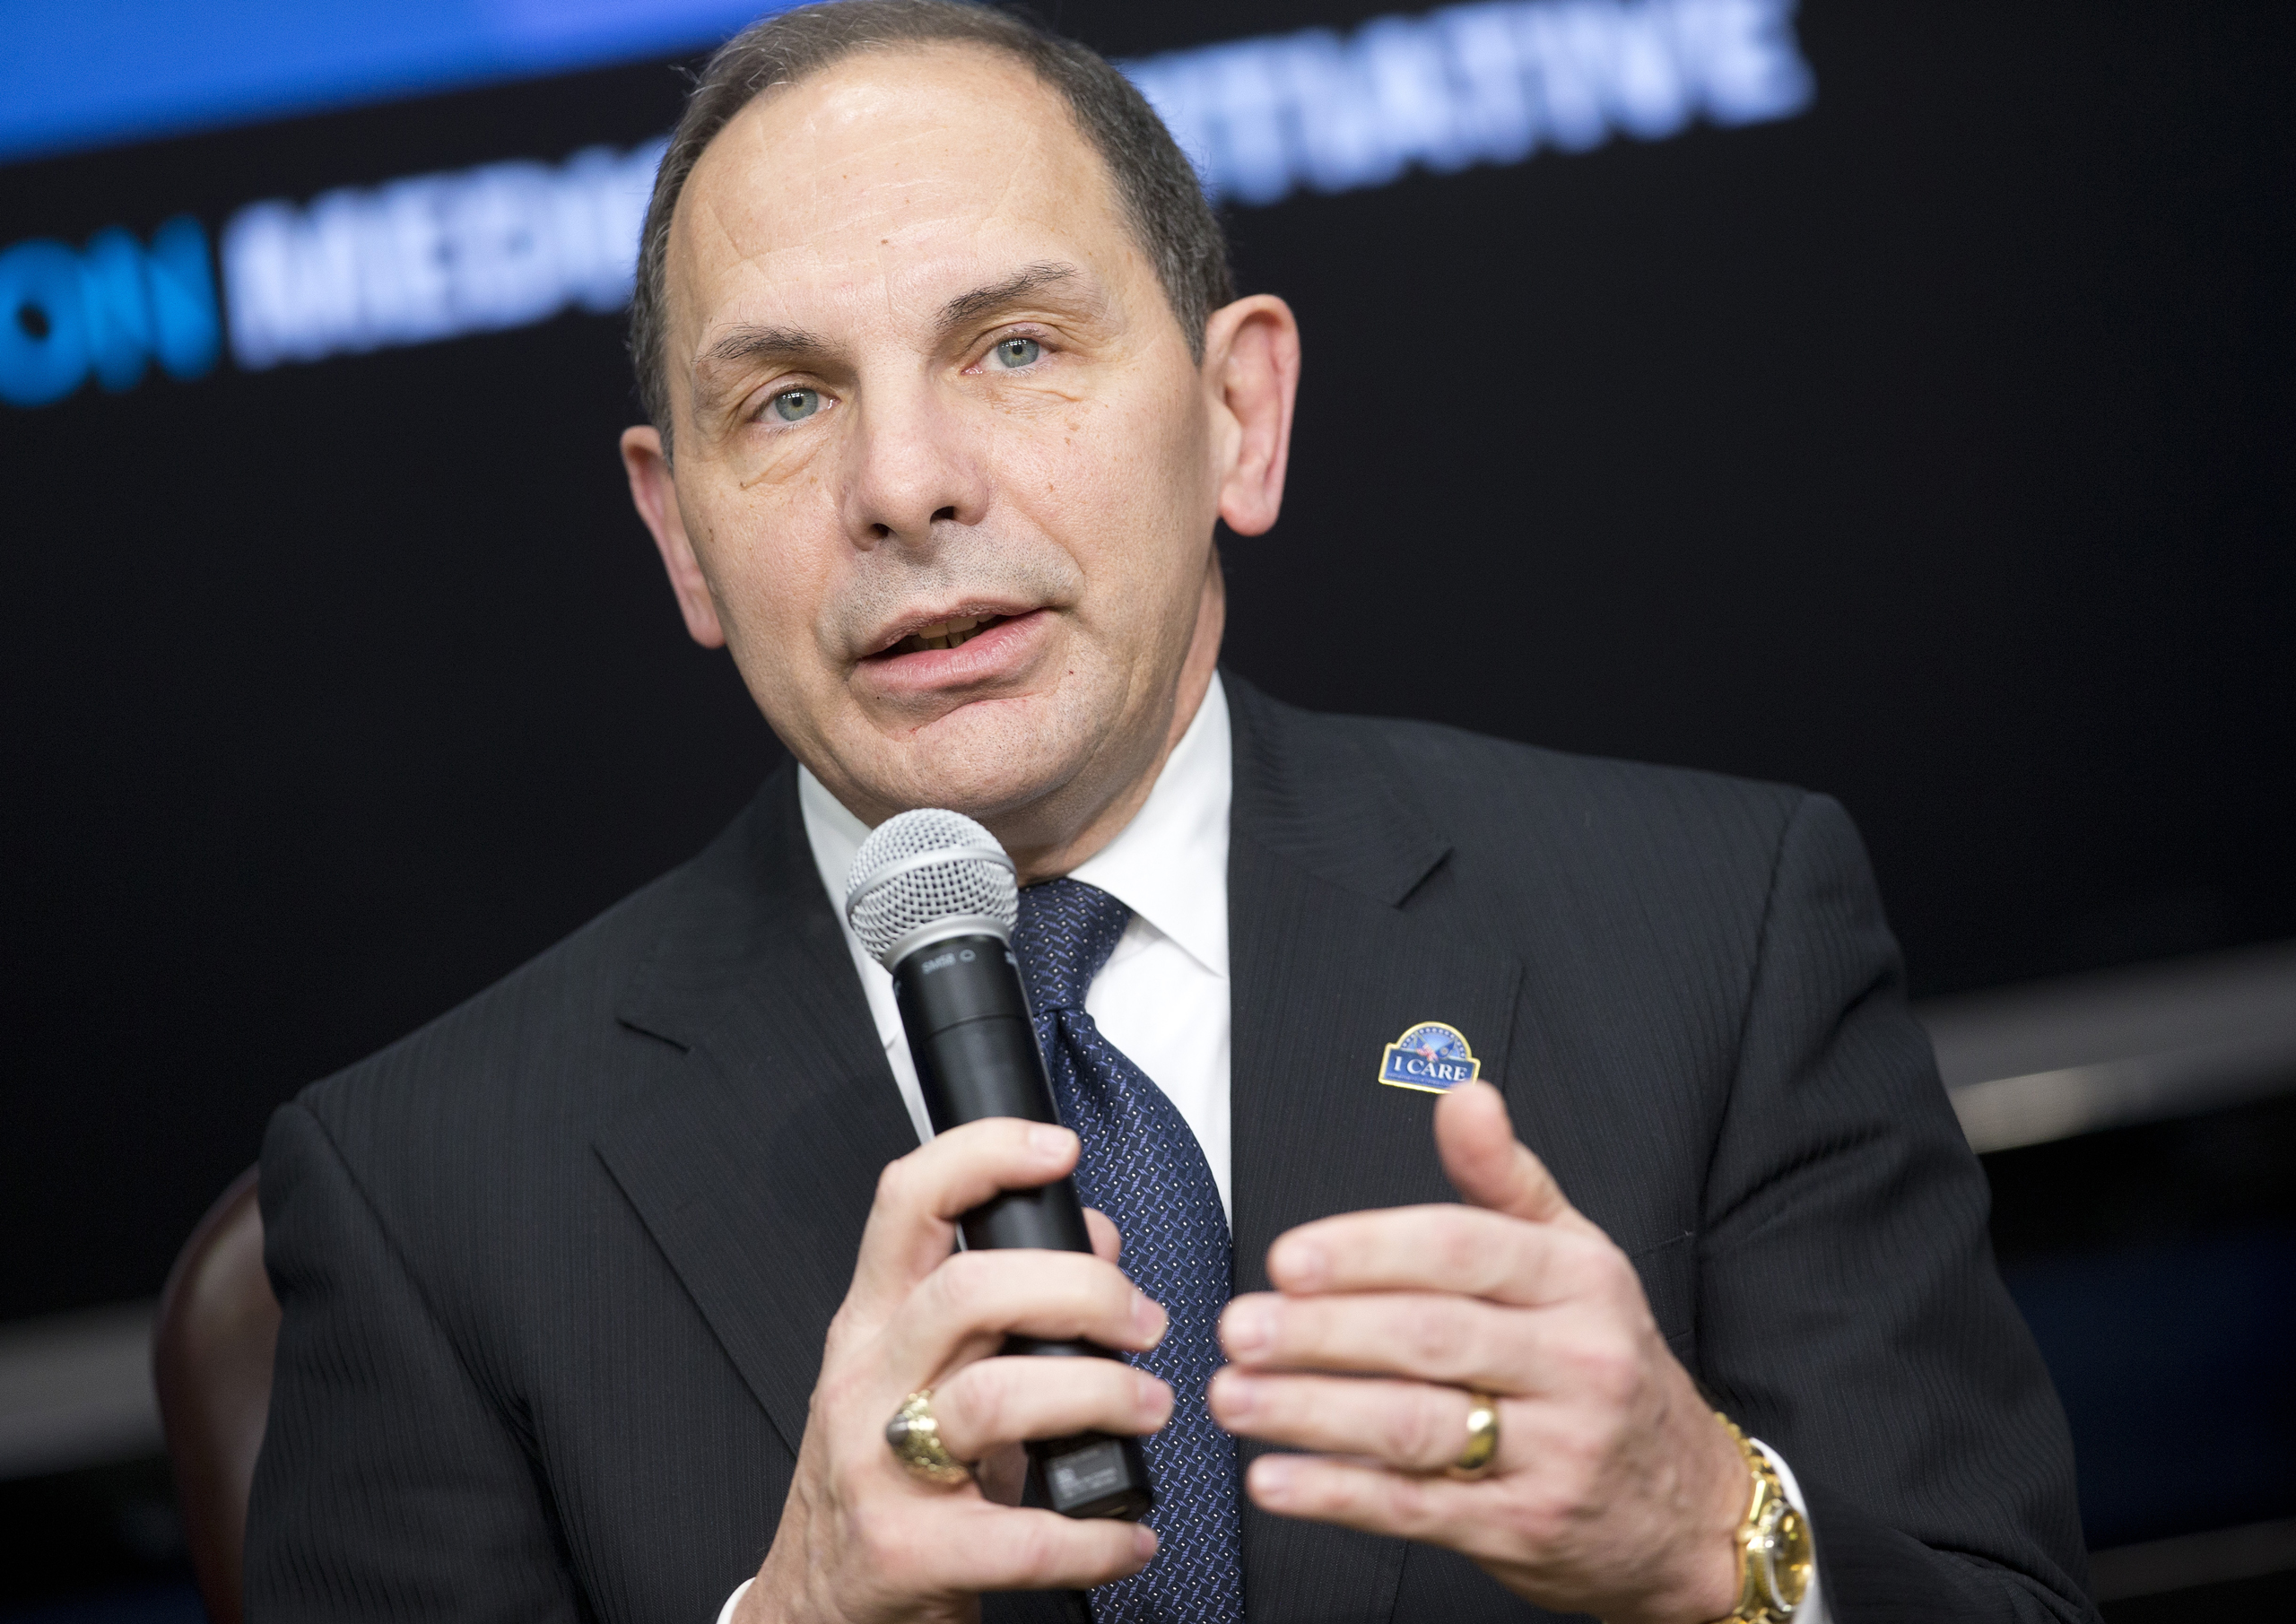 Veterans Affairs Secretary Robert McDonald during a panel discussion as part of the White House Precision Medicine Initiative (PMI)  at the White House in Washingto on Feb. 25, 2016